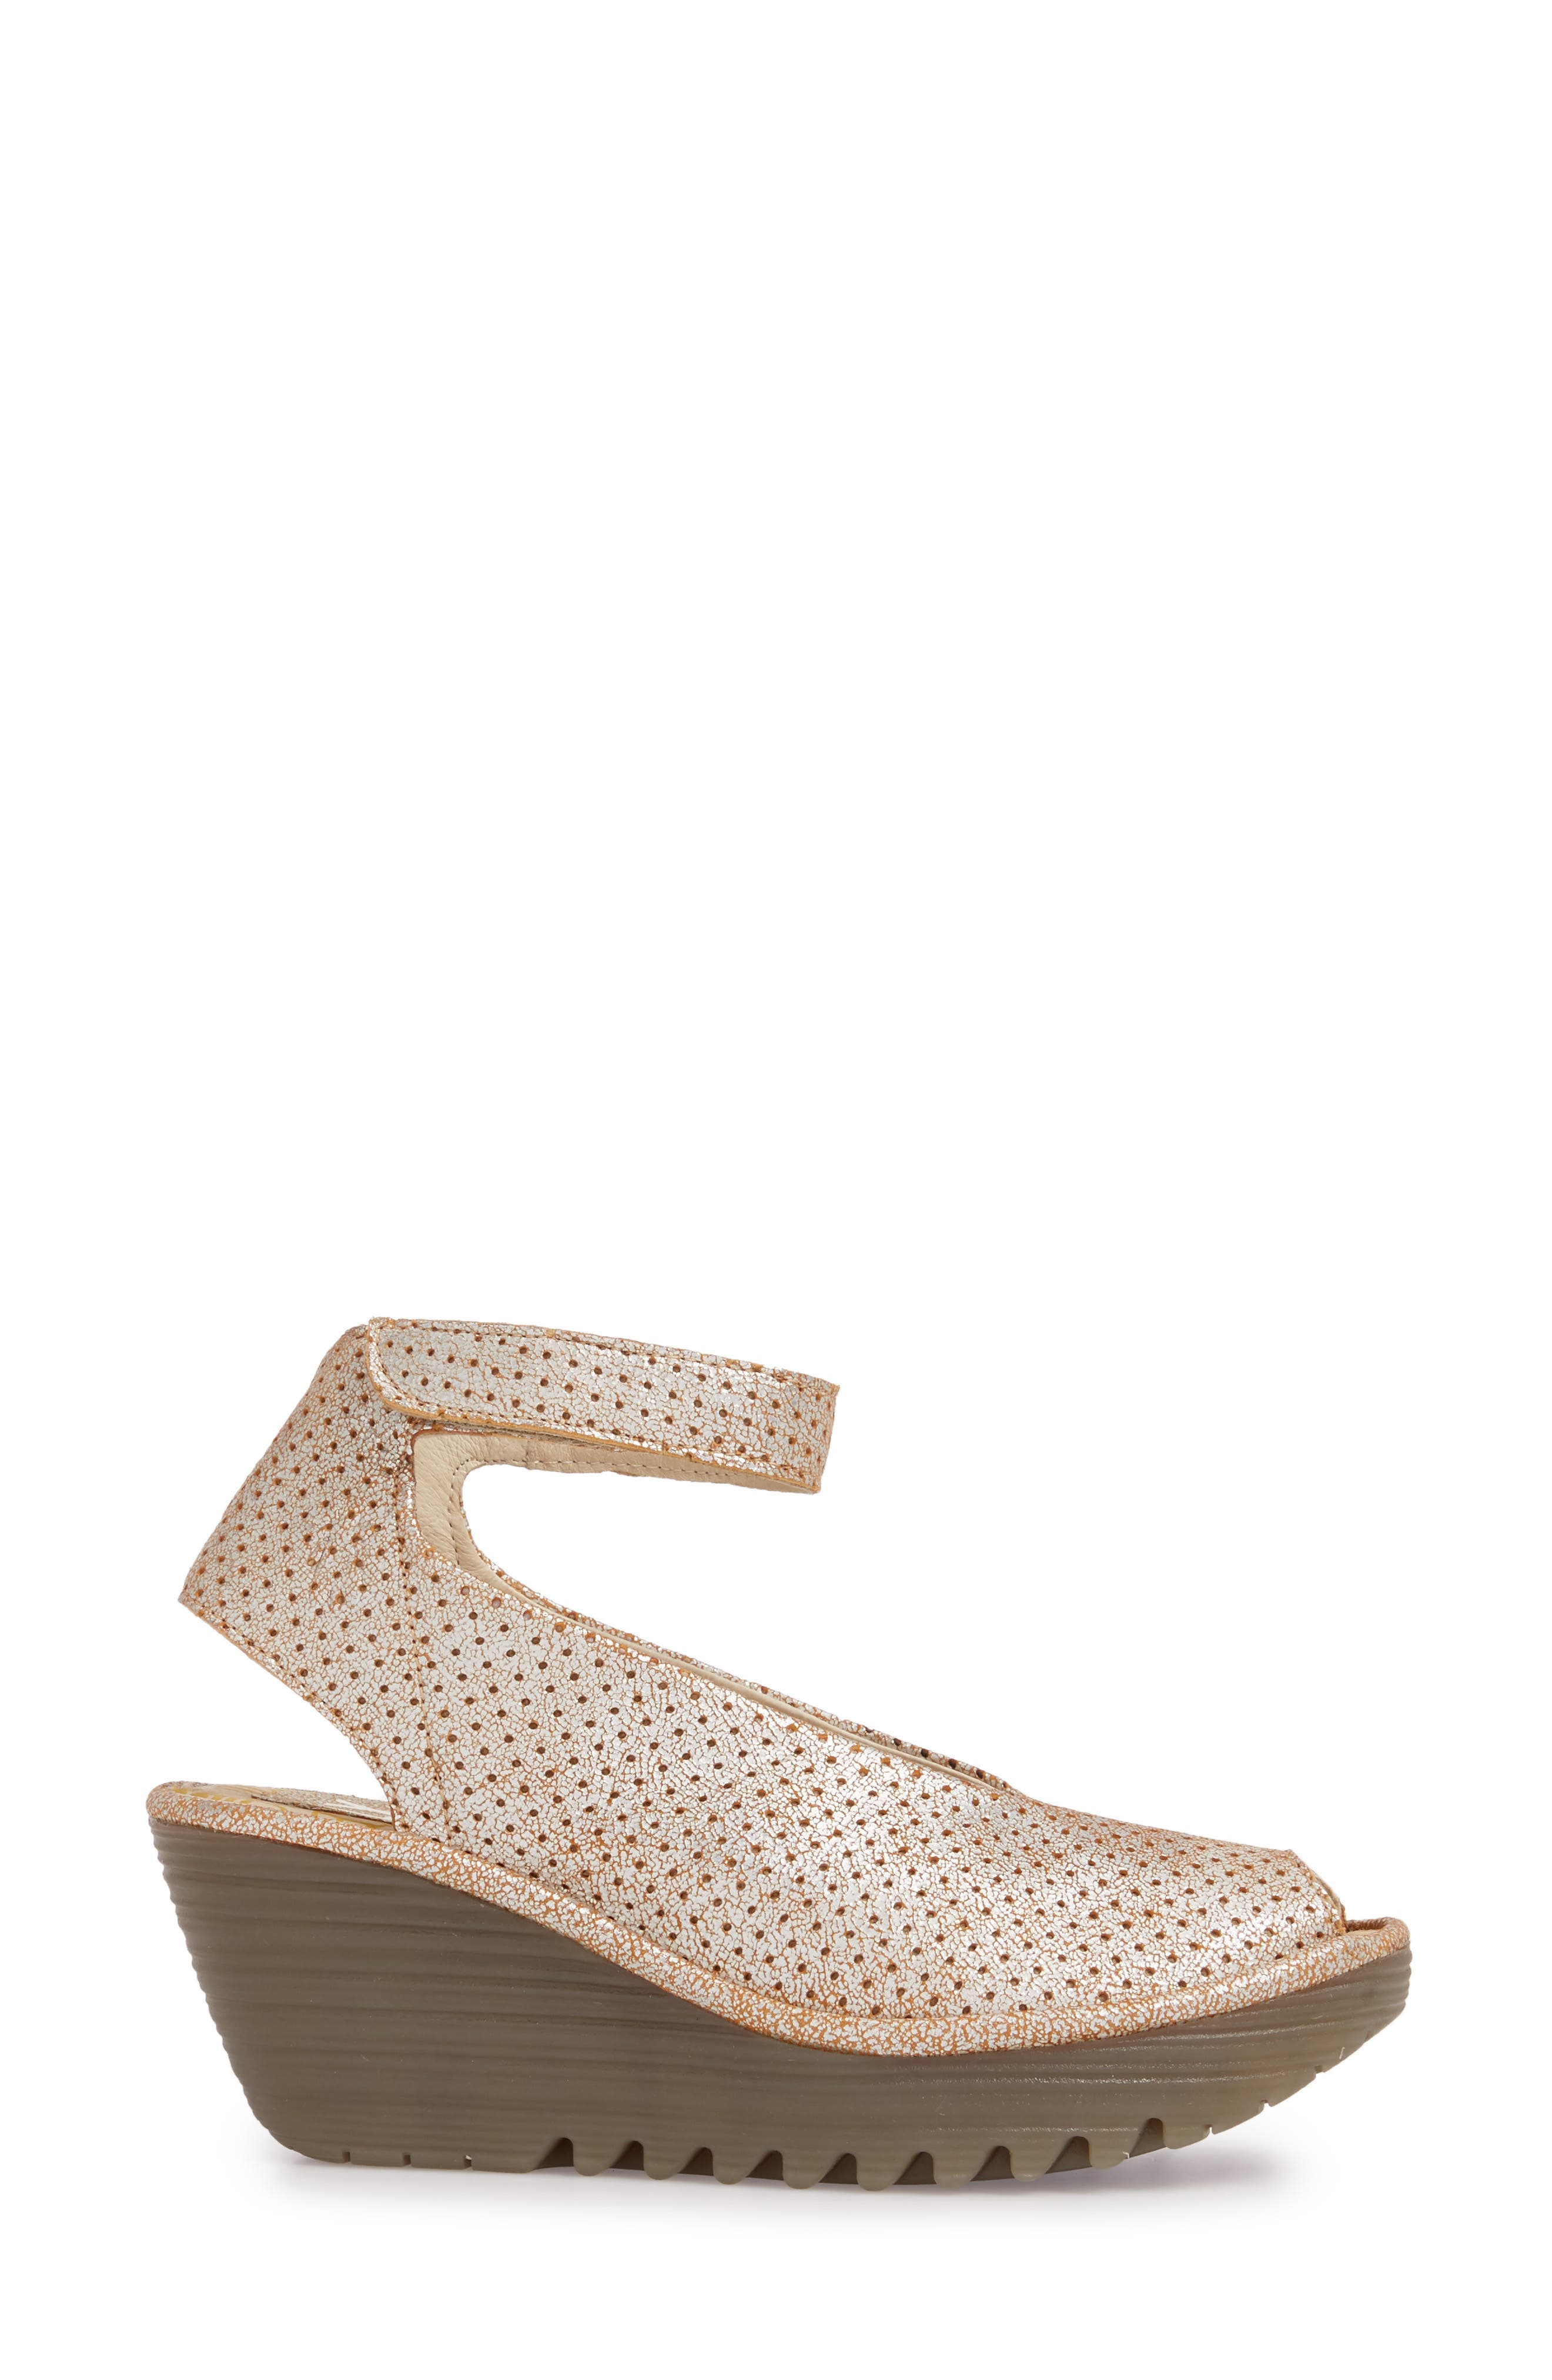 FLY LONDON, 'Yala' Perforated Leather Sandal, Alternate thumbnail 3, color, PEARL COOL LEATHER